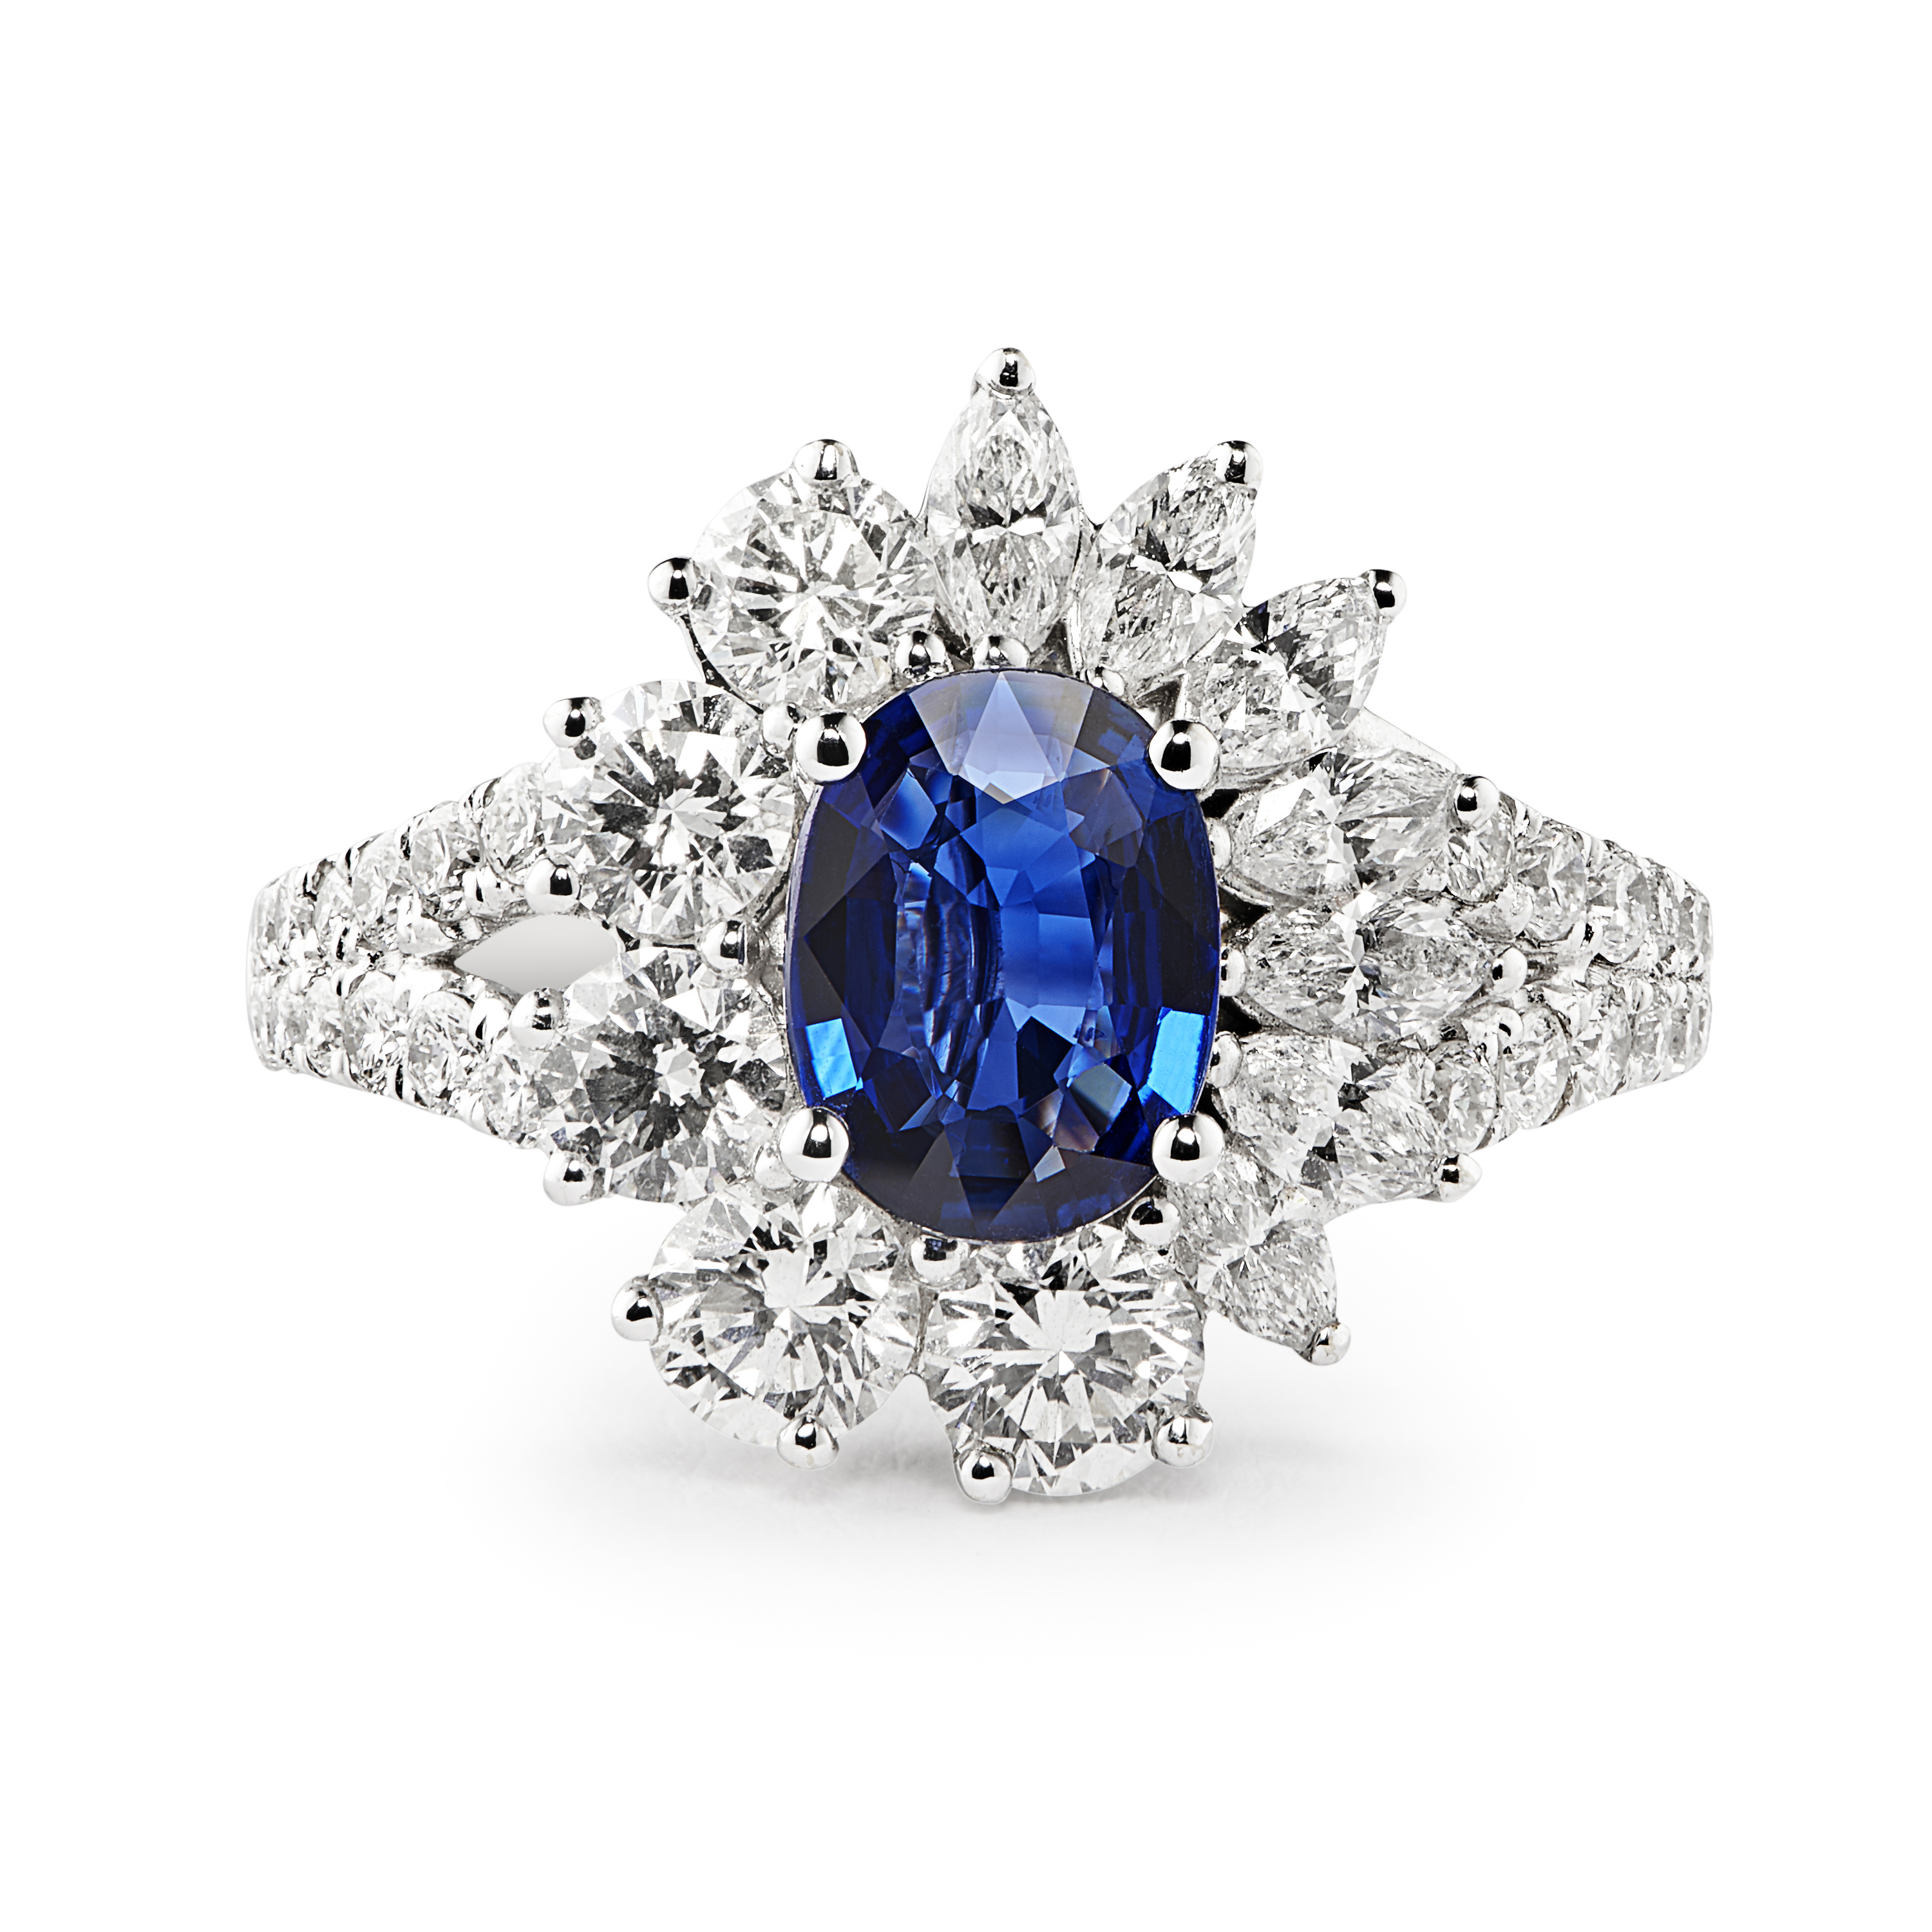 Striking 18ct White Gold Sapphire and Diamond Cluster Ring-0